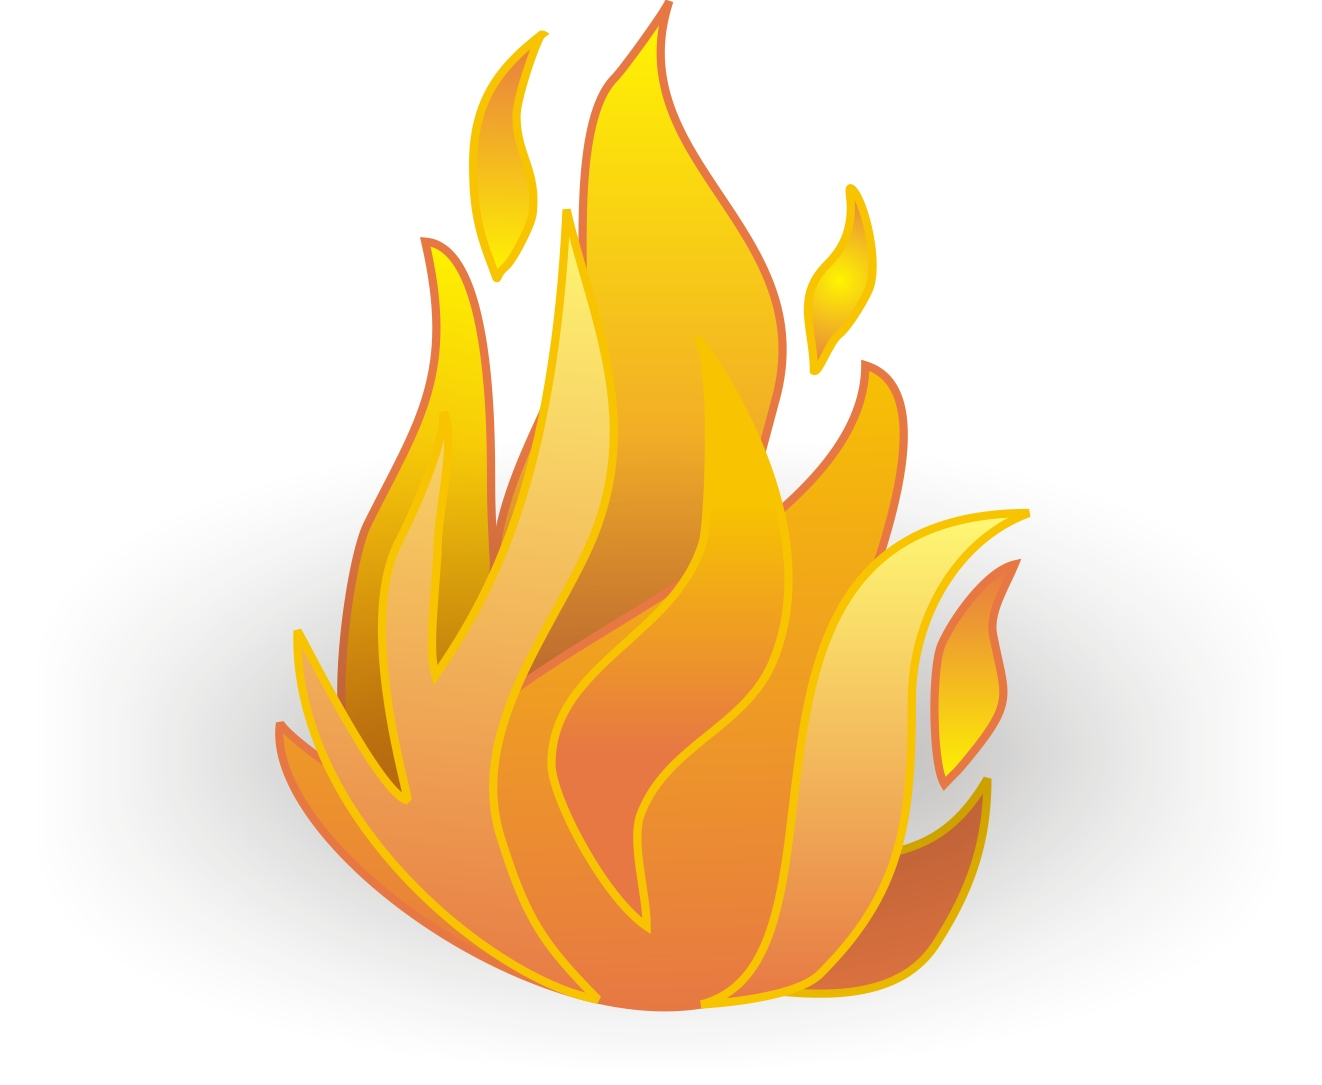 Cartoon Fire - ClipArt Best - Cliparts.co